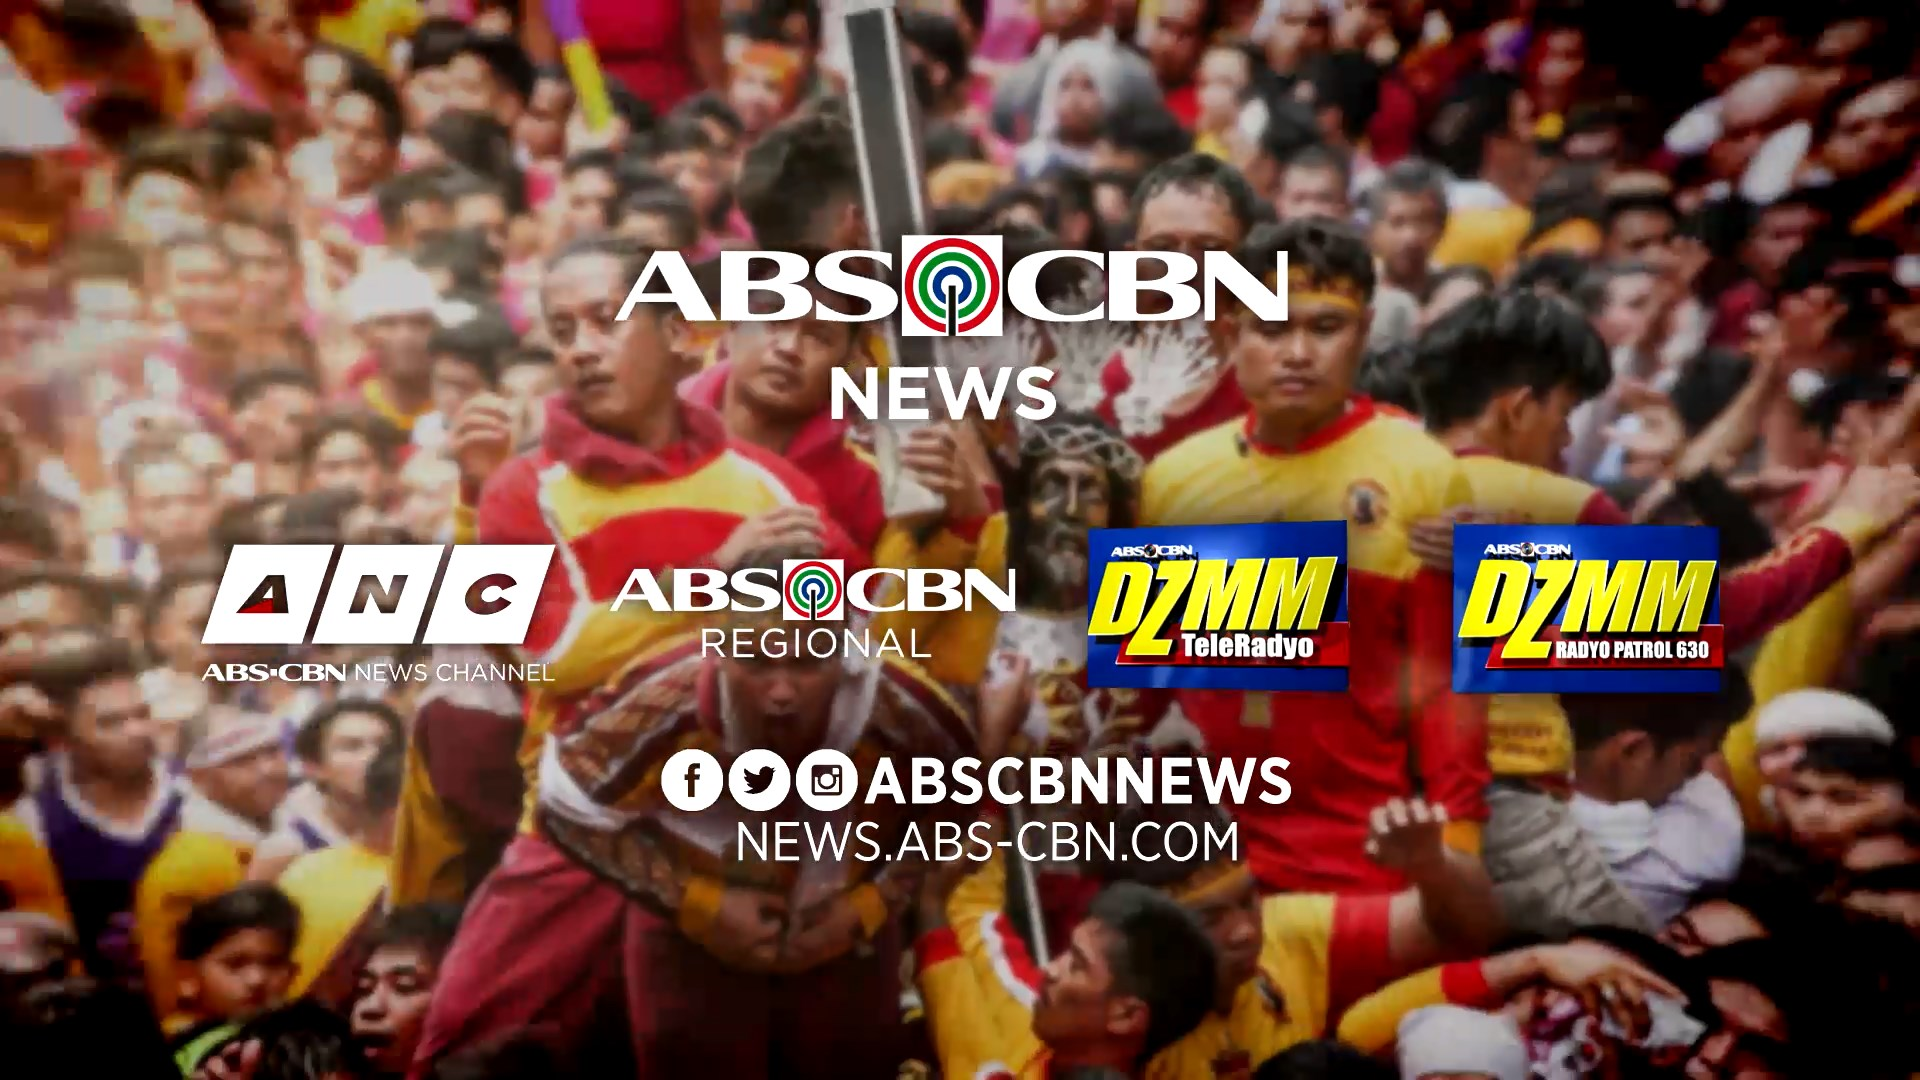 Watch the multiplatform coverage of ABS CBN News of the Traslacion